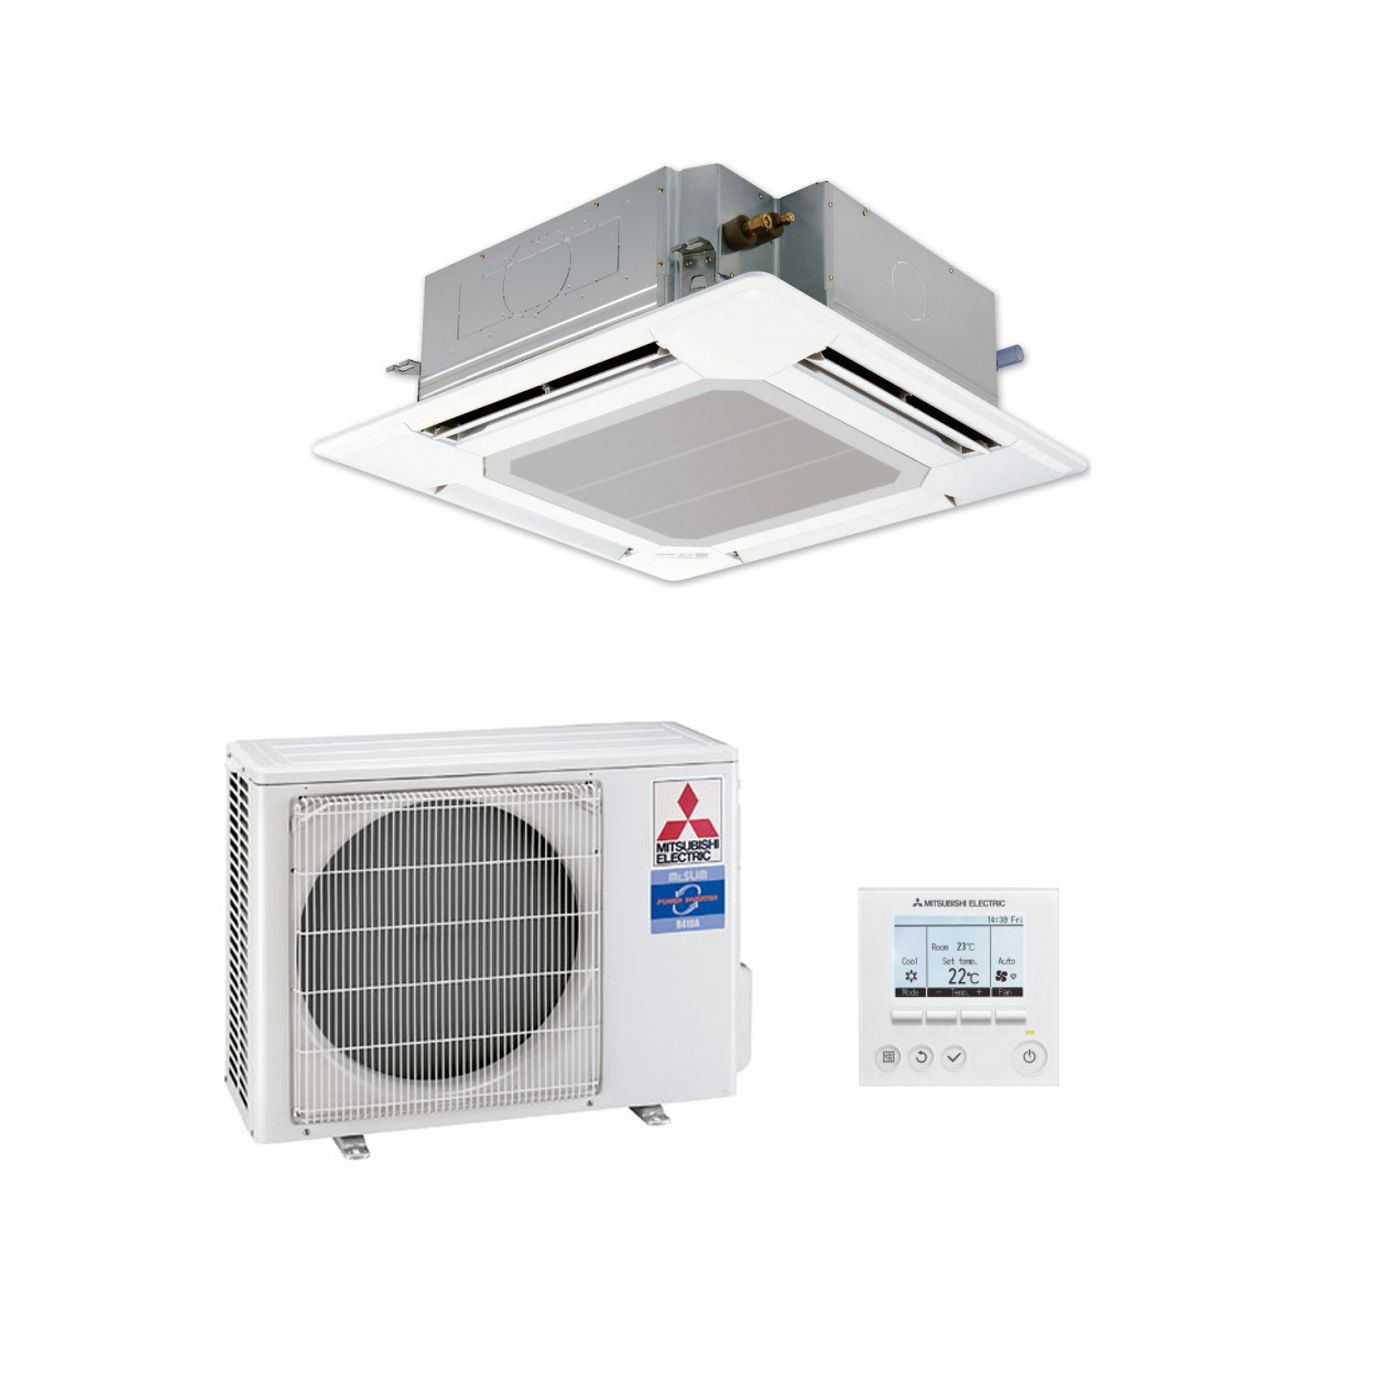 aircon system review mitsubishi service air installation inverter electric from learnt singapore lessons starmex conditioner